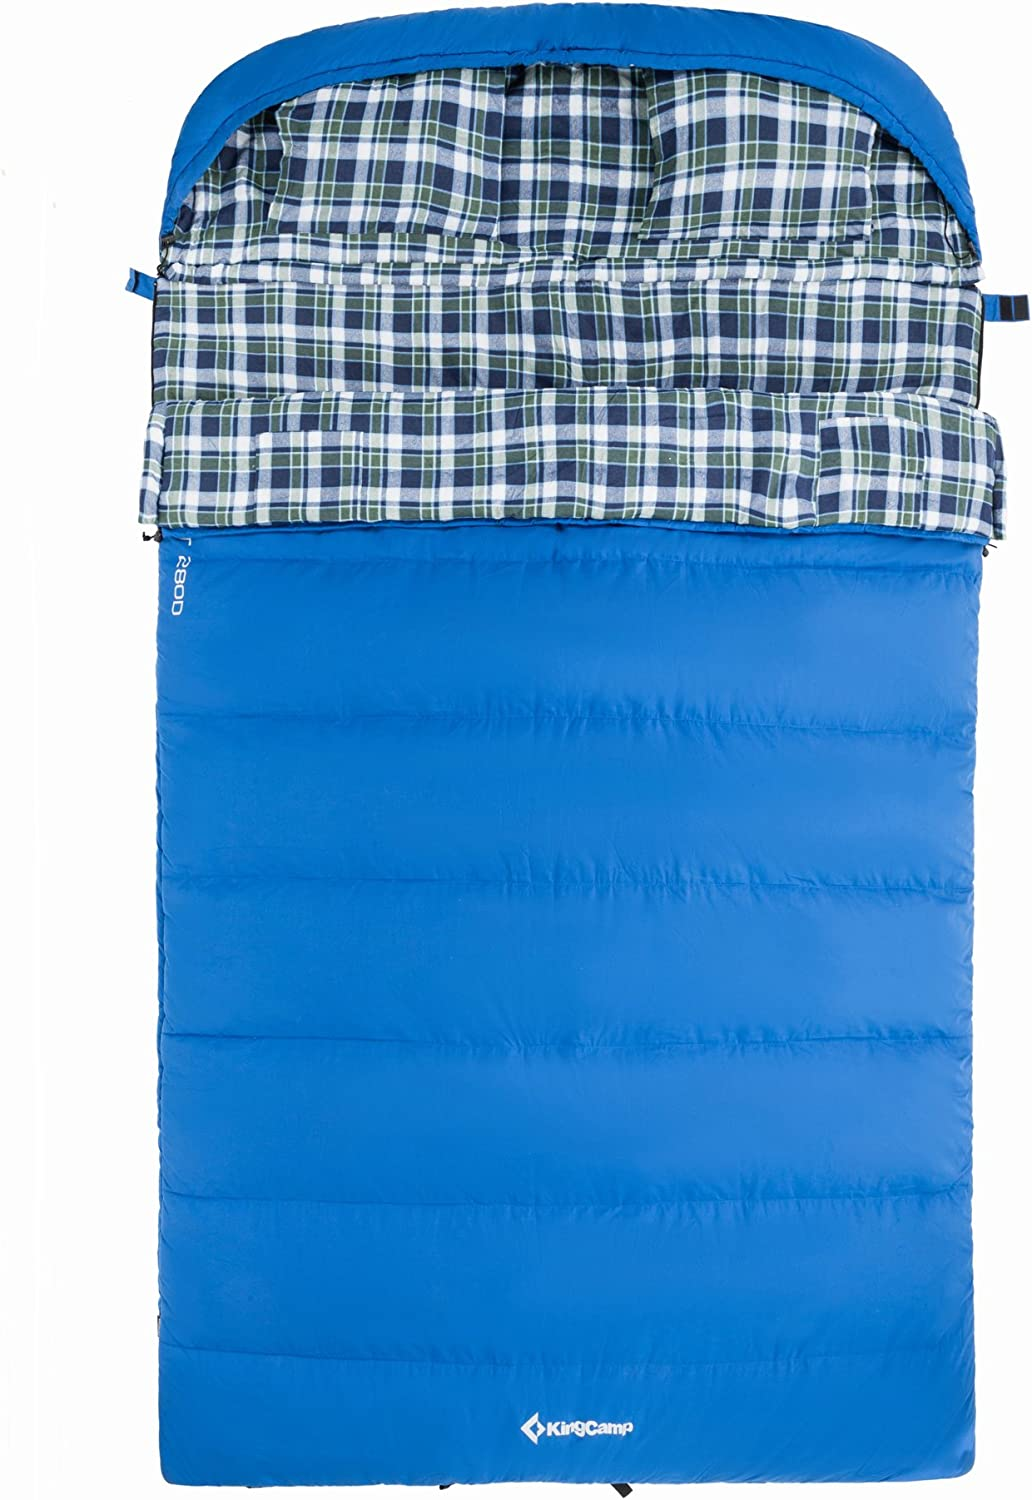 KingCamp Cotton Flannel All Season 5F -15C Envelope Sleeping Bag for Adult and Youth with Pillow, Double and Single Size